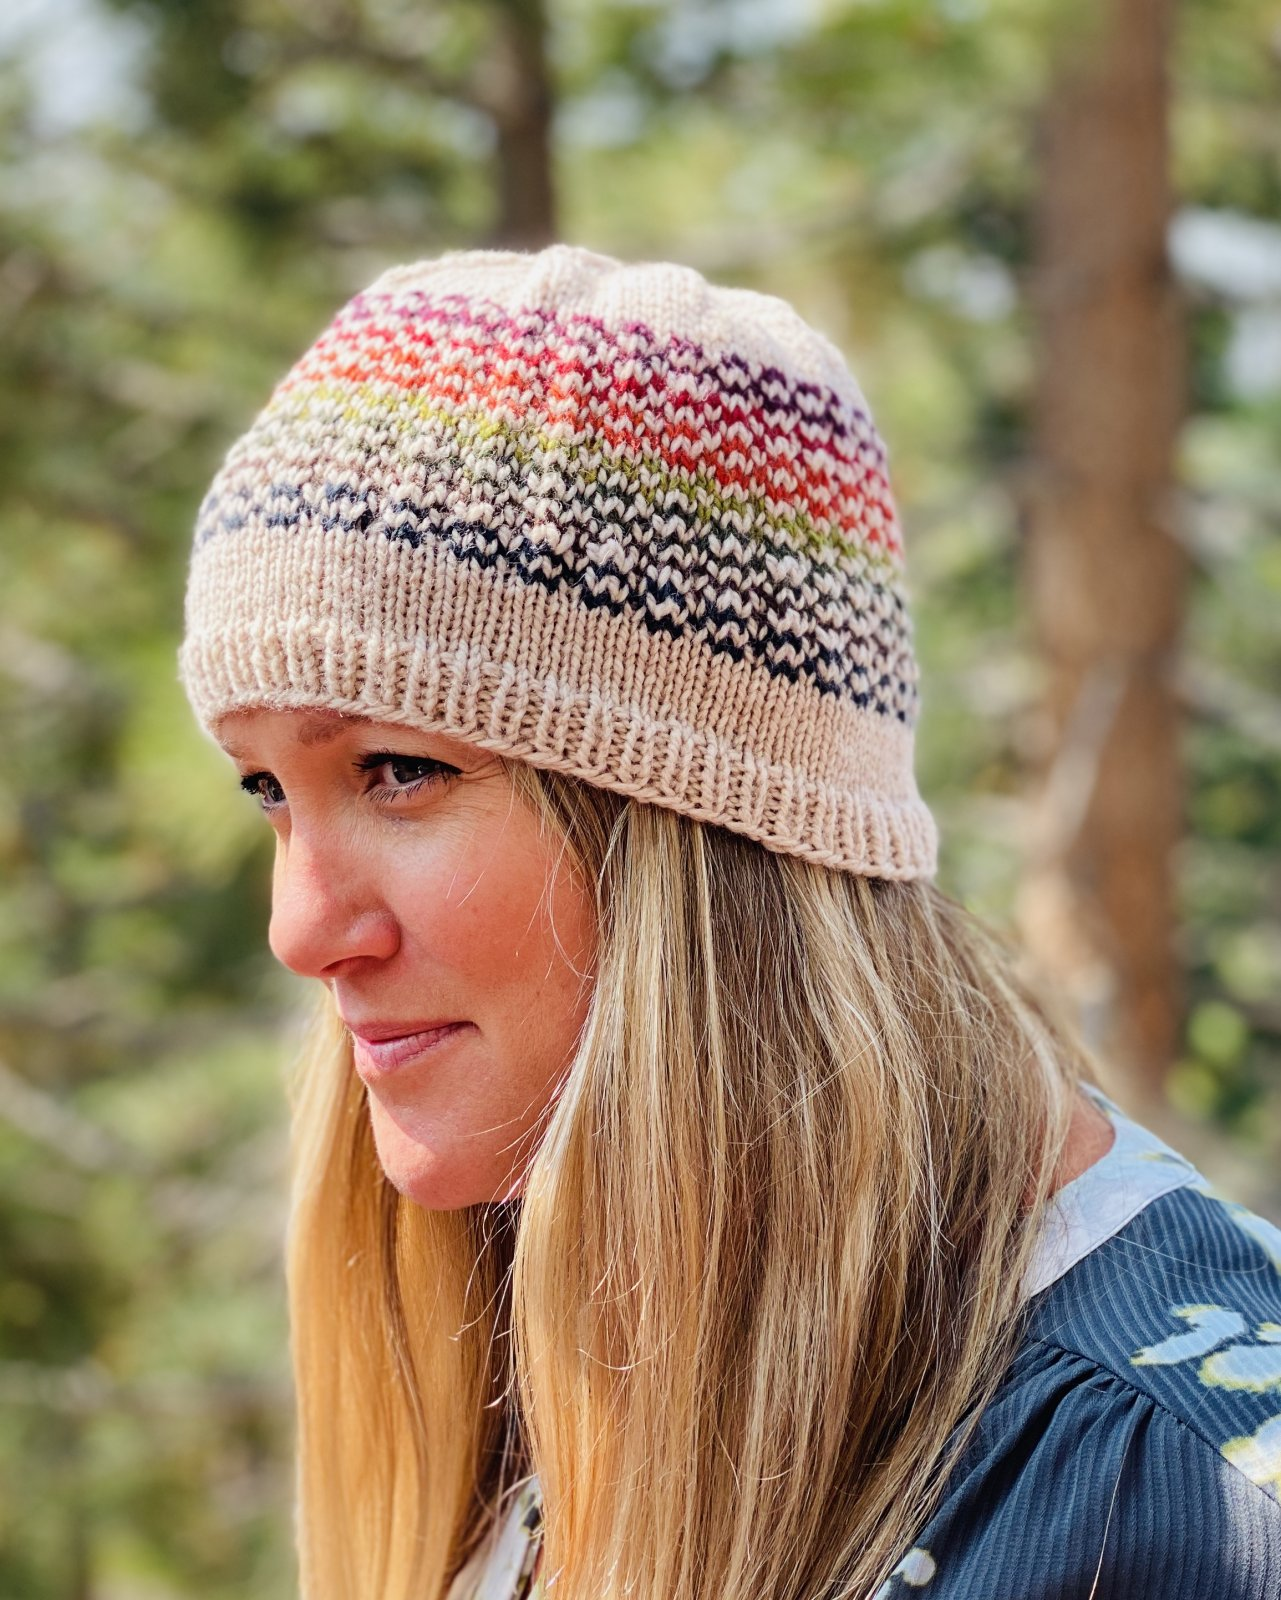 Yarn Crawl Kit! Breckenridge (Tahoe colorway) Hat